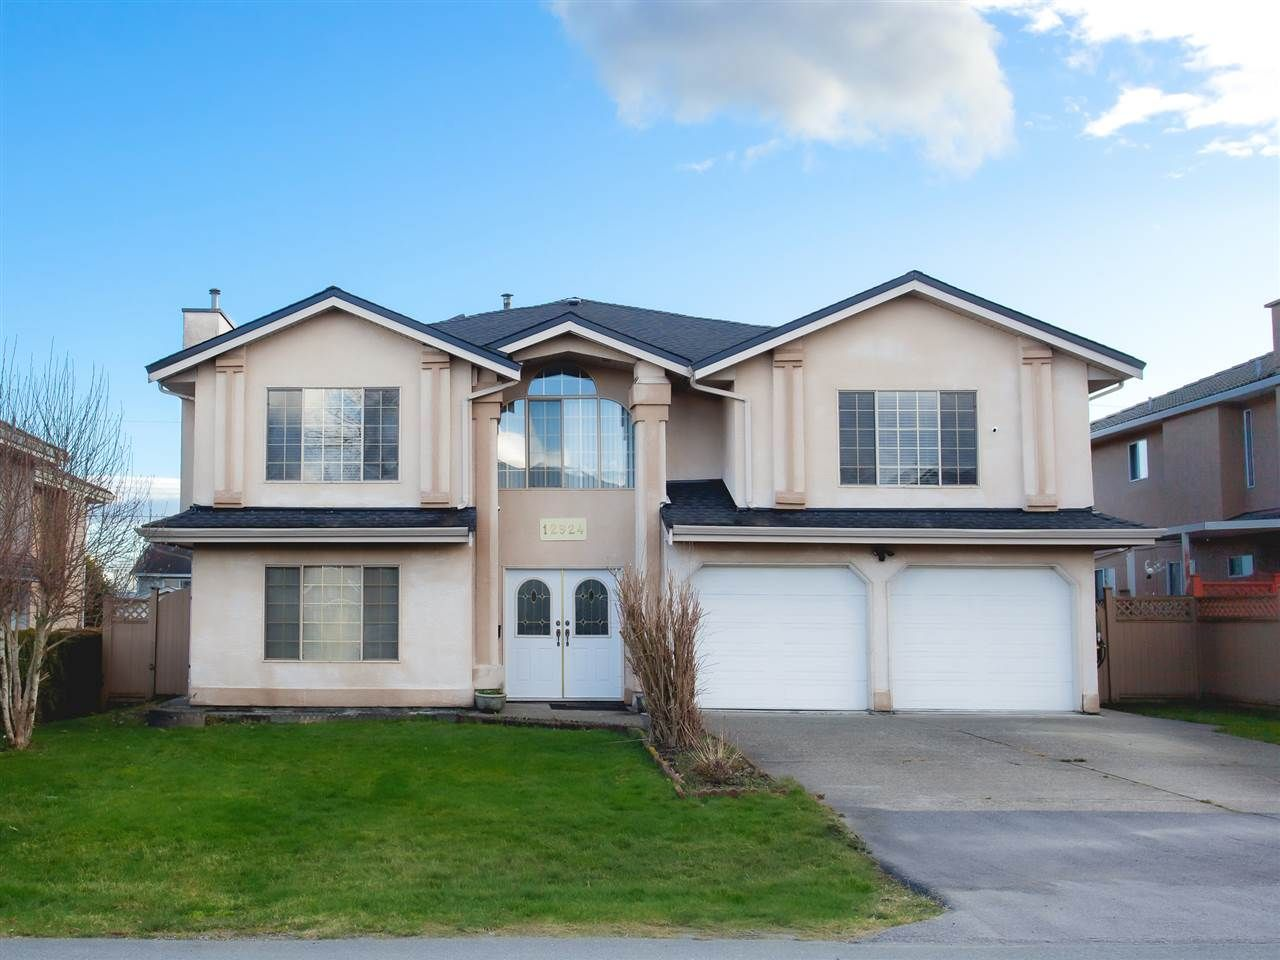 Main Photo: 12924 87A Avenue in Surrey: Queen Mary Park Surrey House for sale : MLS®# R2541513